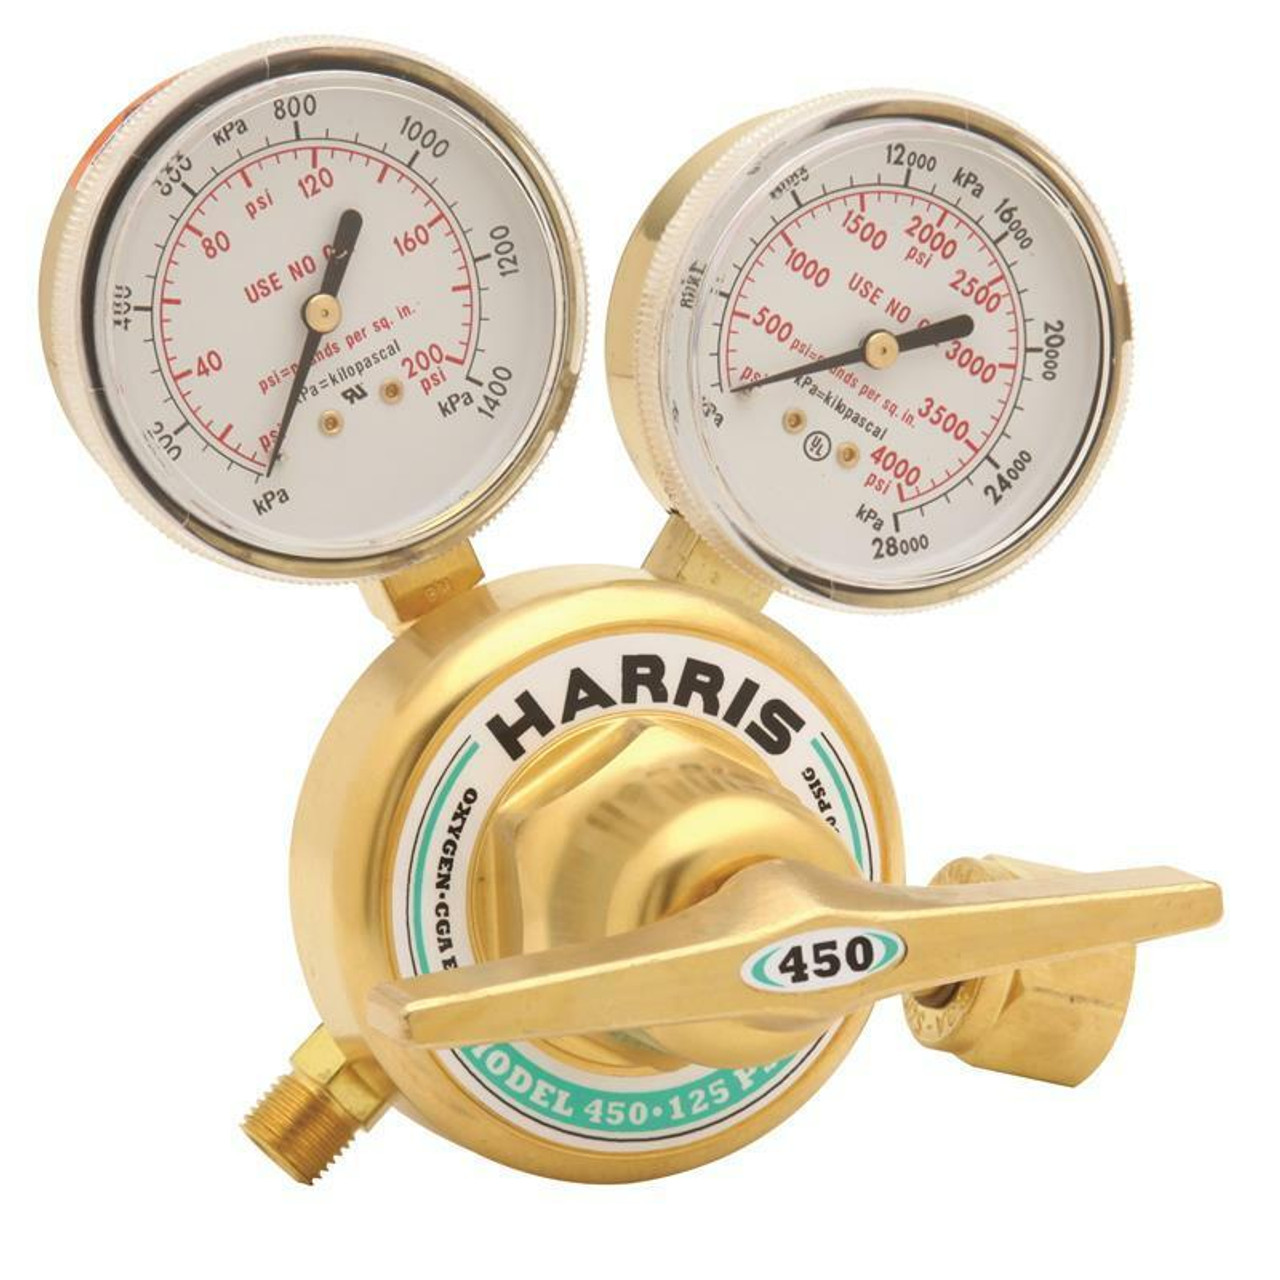 Harris Model 450-200-540 Oxygen Single Stage Stainless Steel Diaphragm Regulator - 3002499